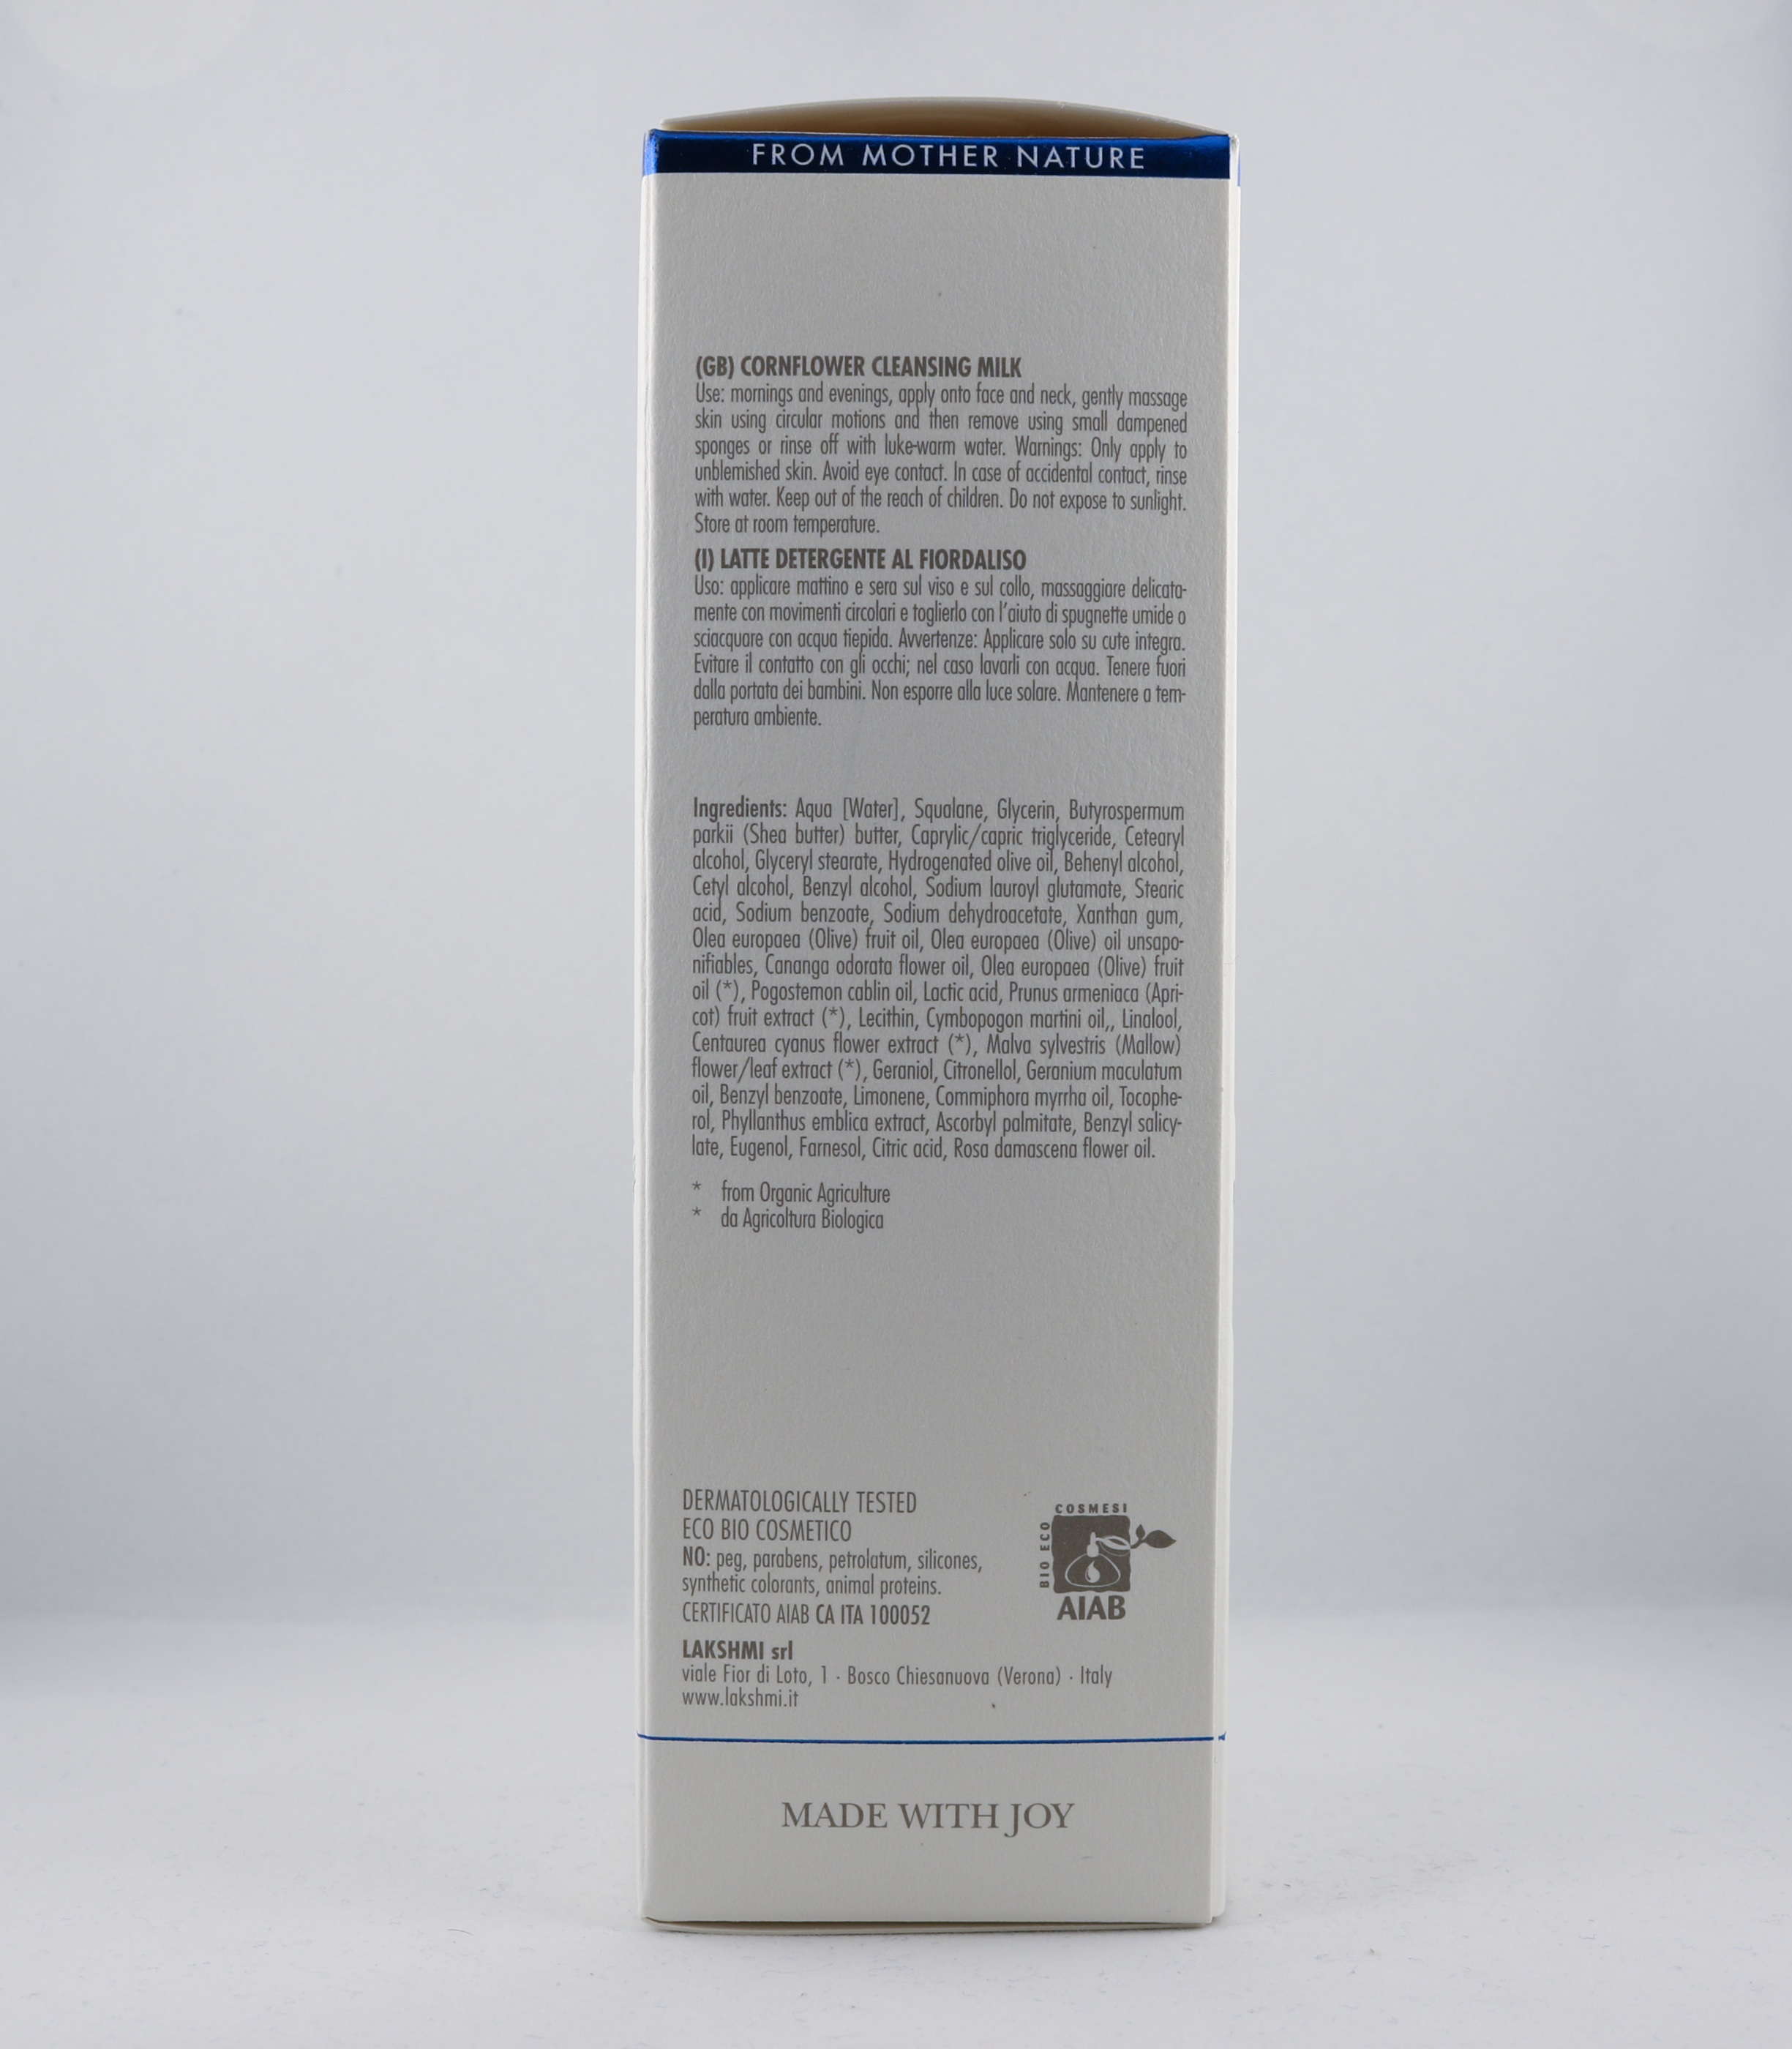 Pitta Cornflower Face Cleansing Milk wellness ayurveda halmstad sweden svensk hudvård